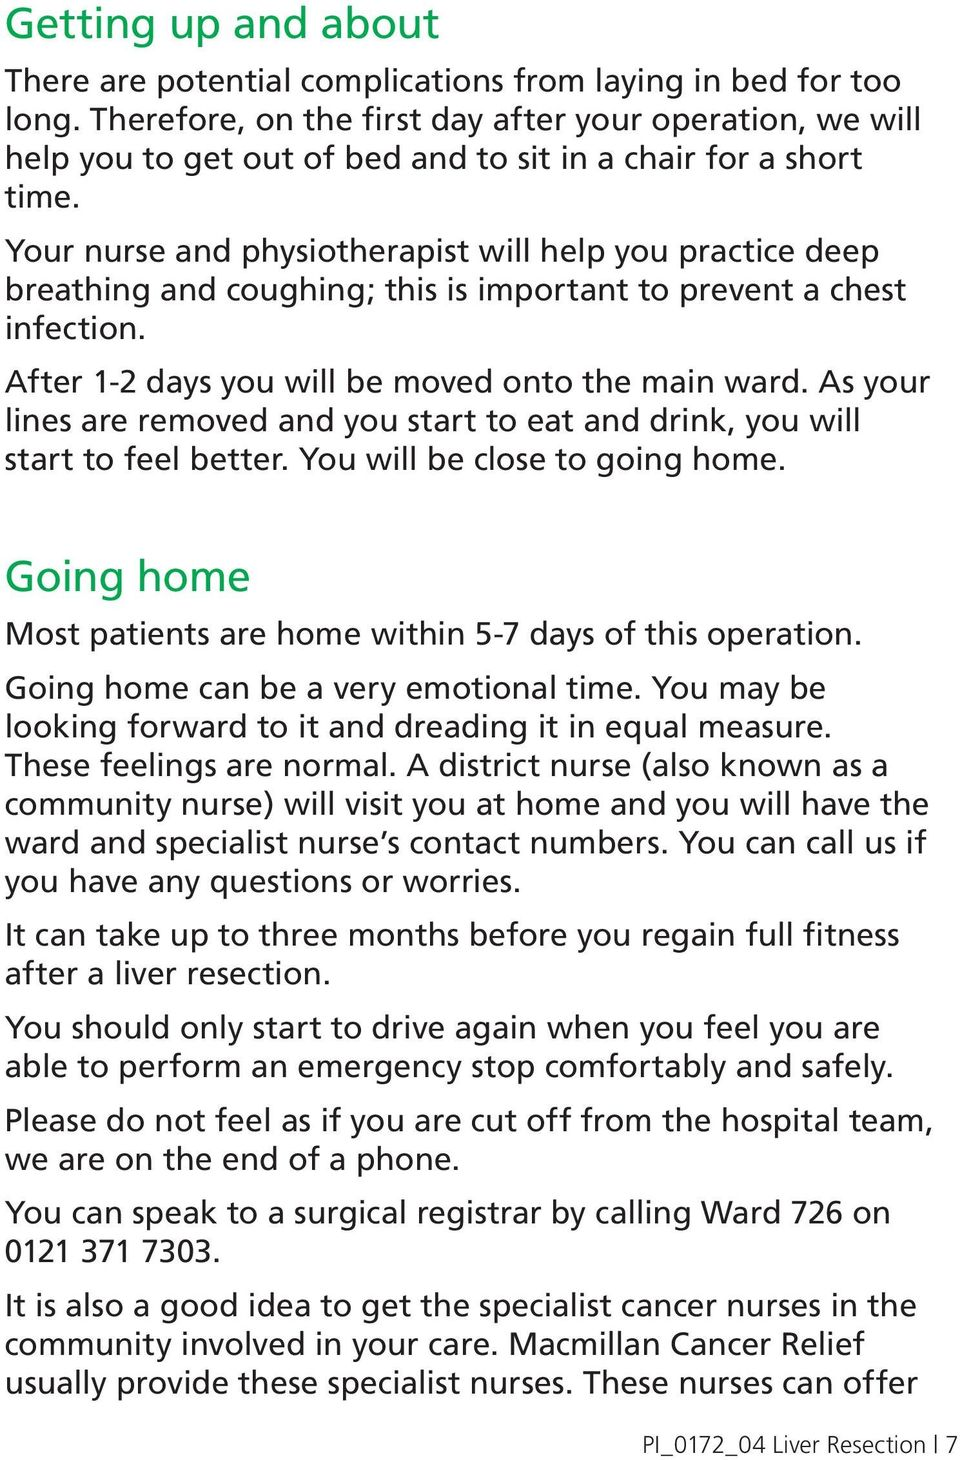 Your nurse and physiotherapist will help you practice deep breathing and coughing; this is important to prevent a chest infection. After 1-2 days you will be moved onto the main ward.